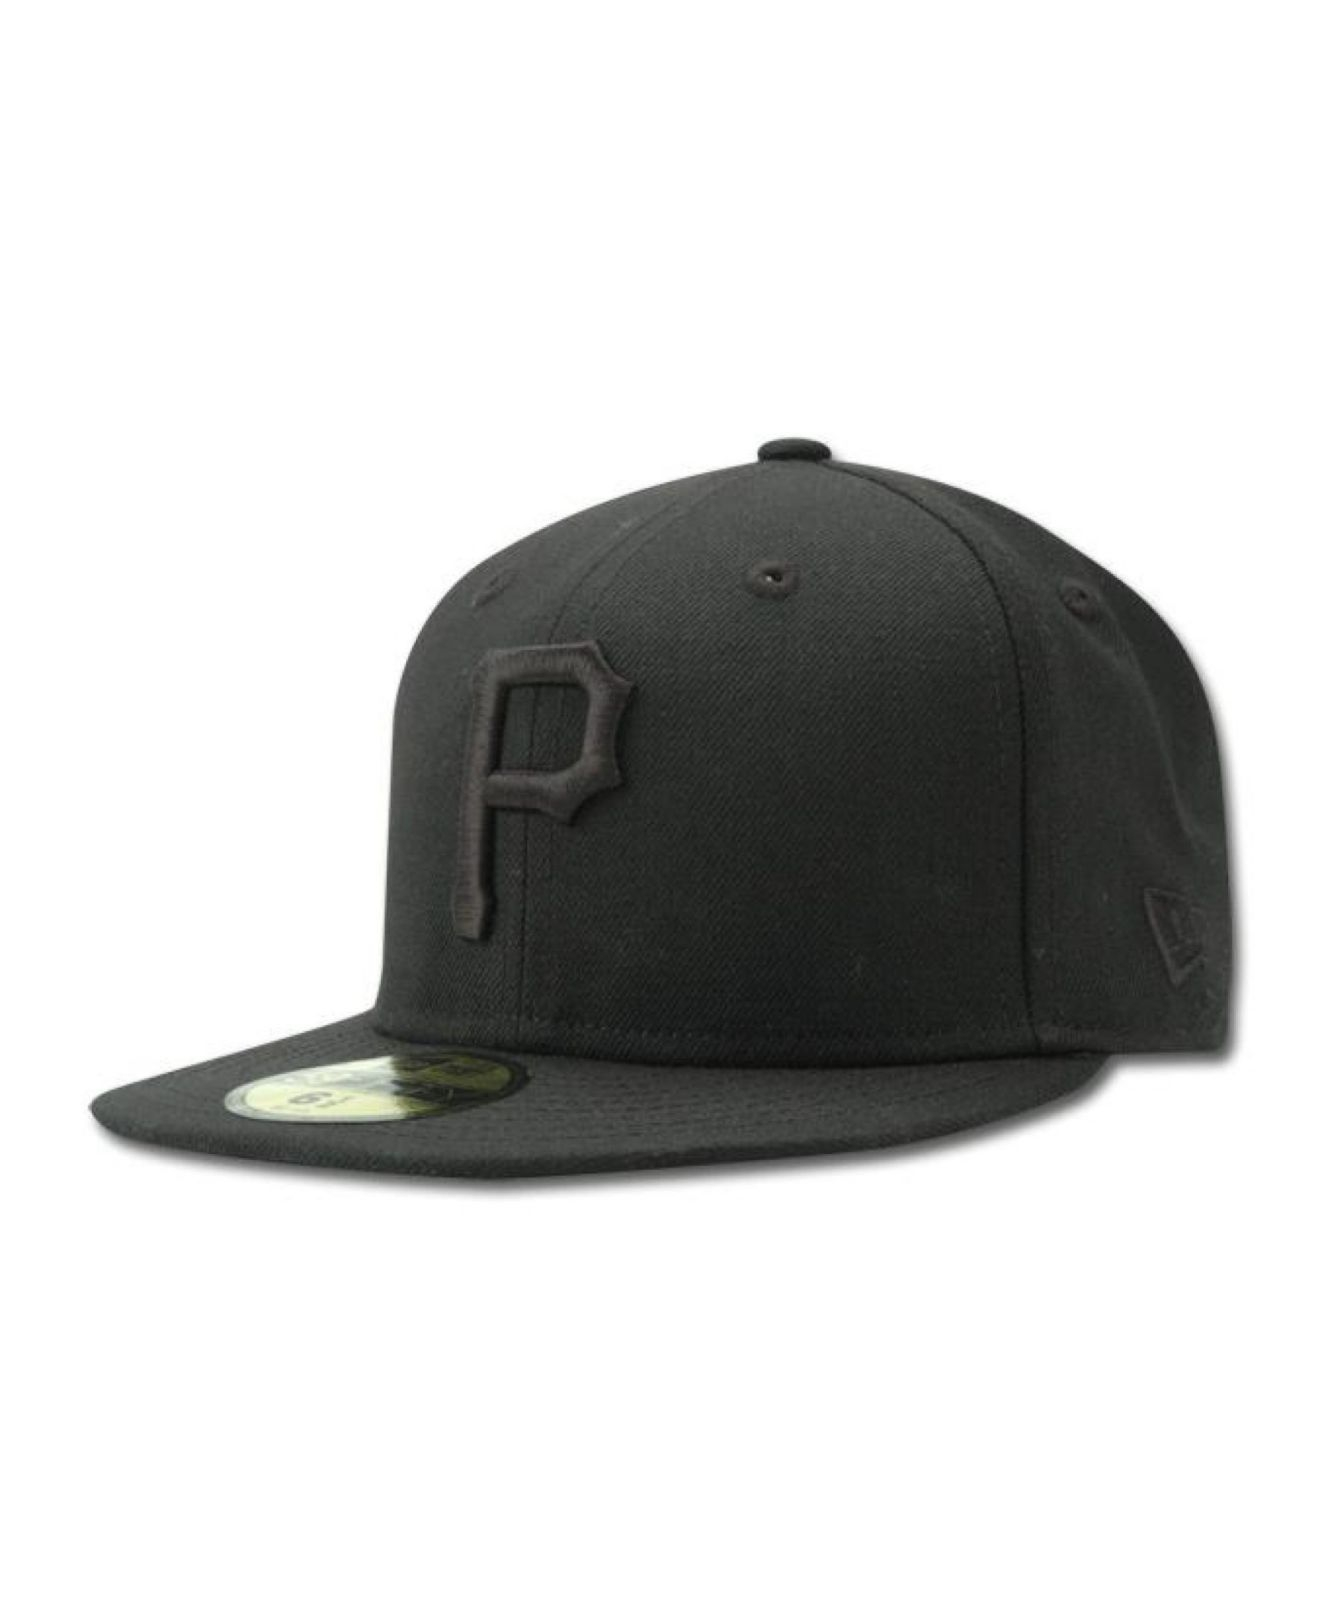 19fb0e1c405 Lyst - Ktz Kids  Pittsburgh Pirates Mlb Black On Black Fashion ...